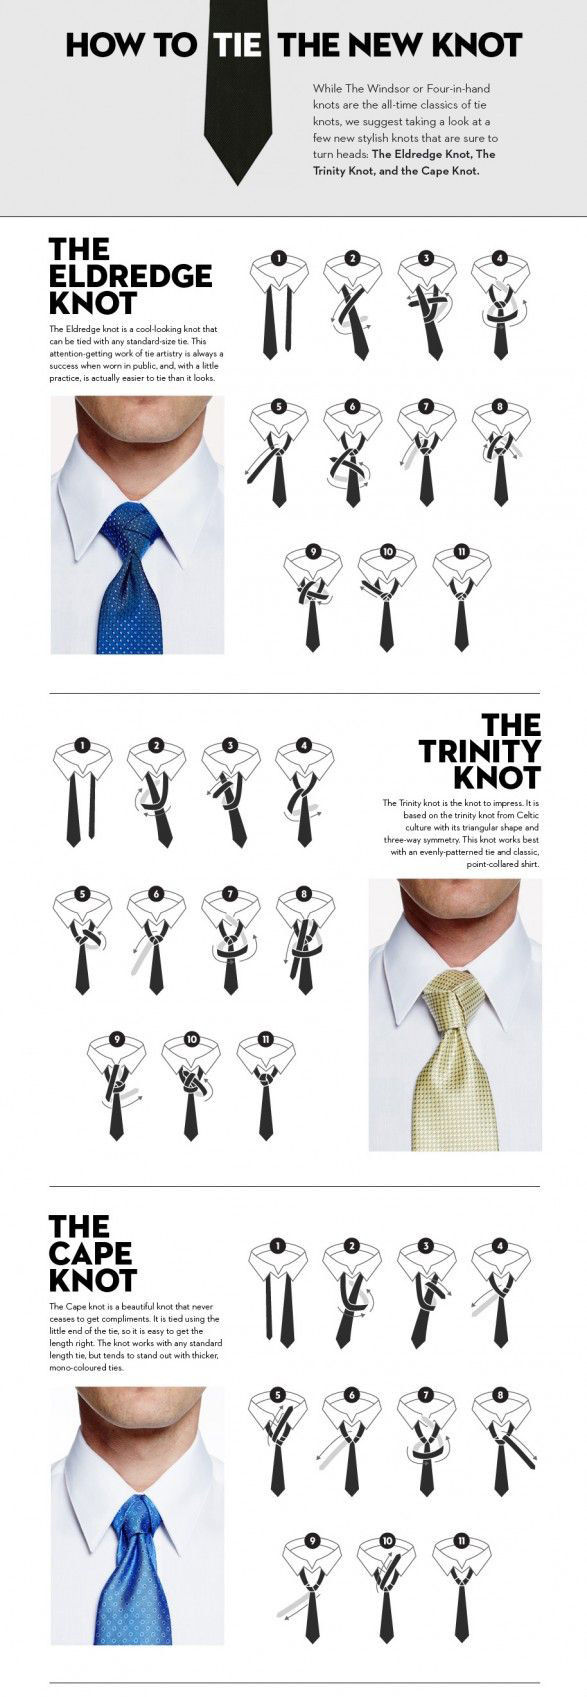 How to tie the new knot